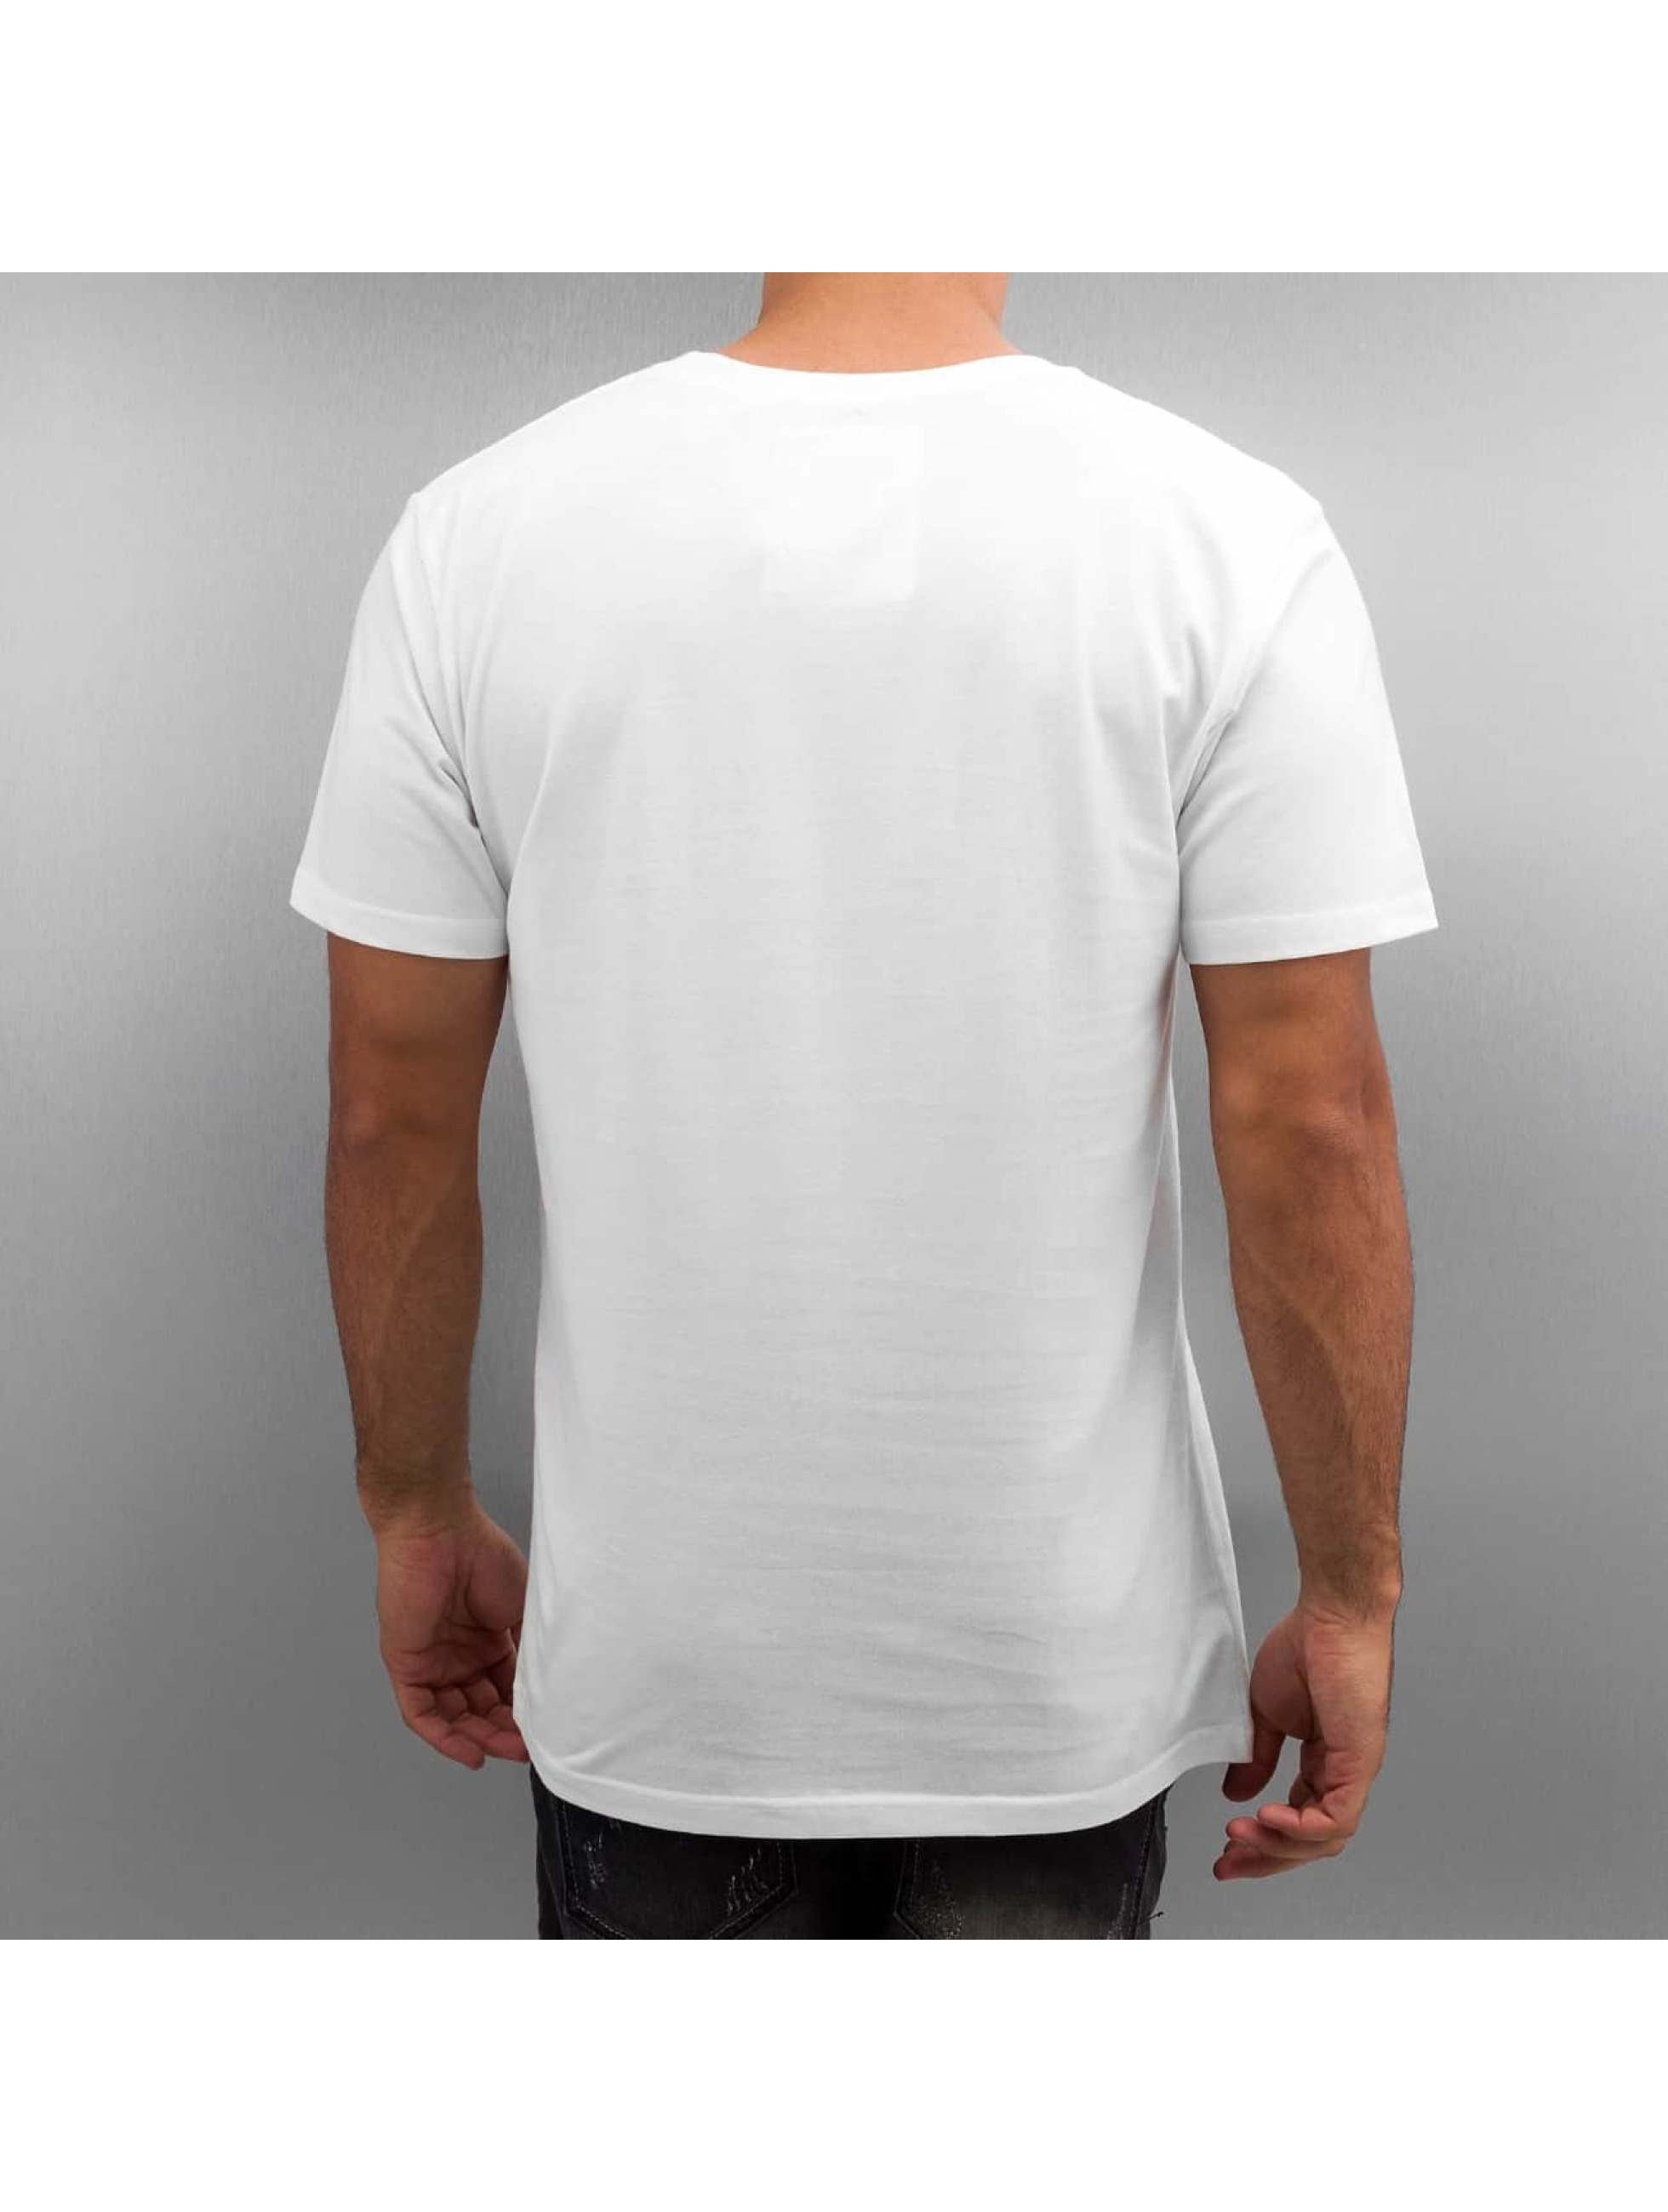 DEDICATED T-Shirt Ricky Powell The Rulers blanc